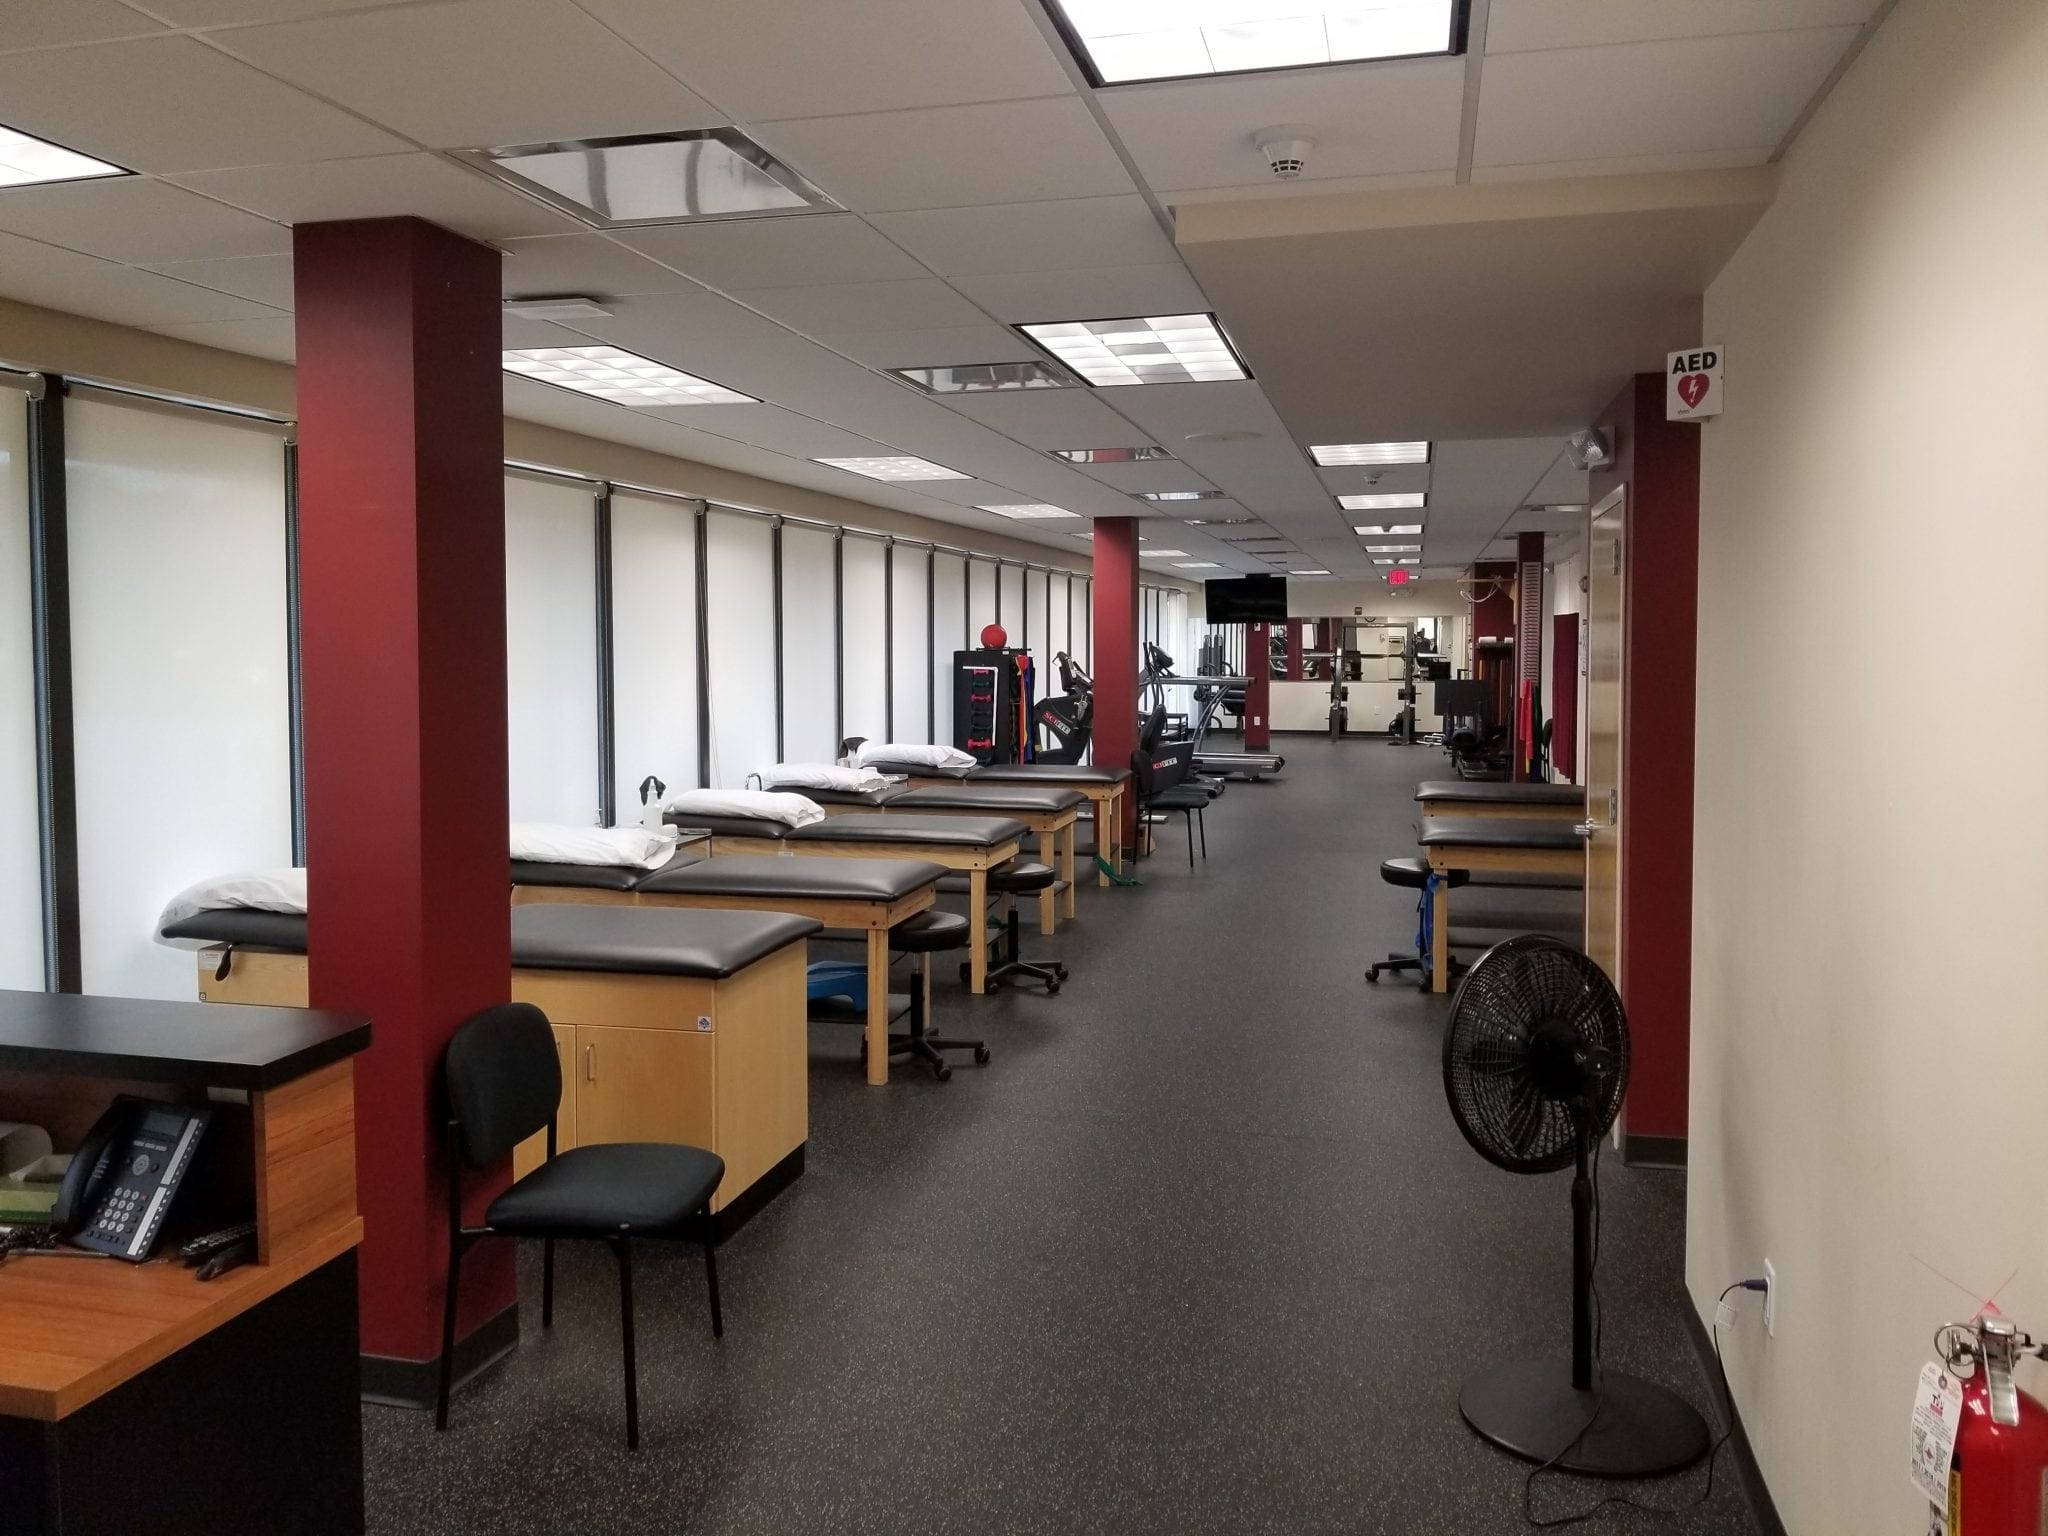 Here is an image of seven stretch beds at our physical therapy clinic in East Englewood, New Jersey.